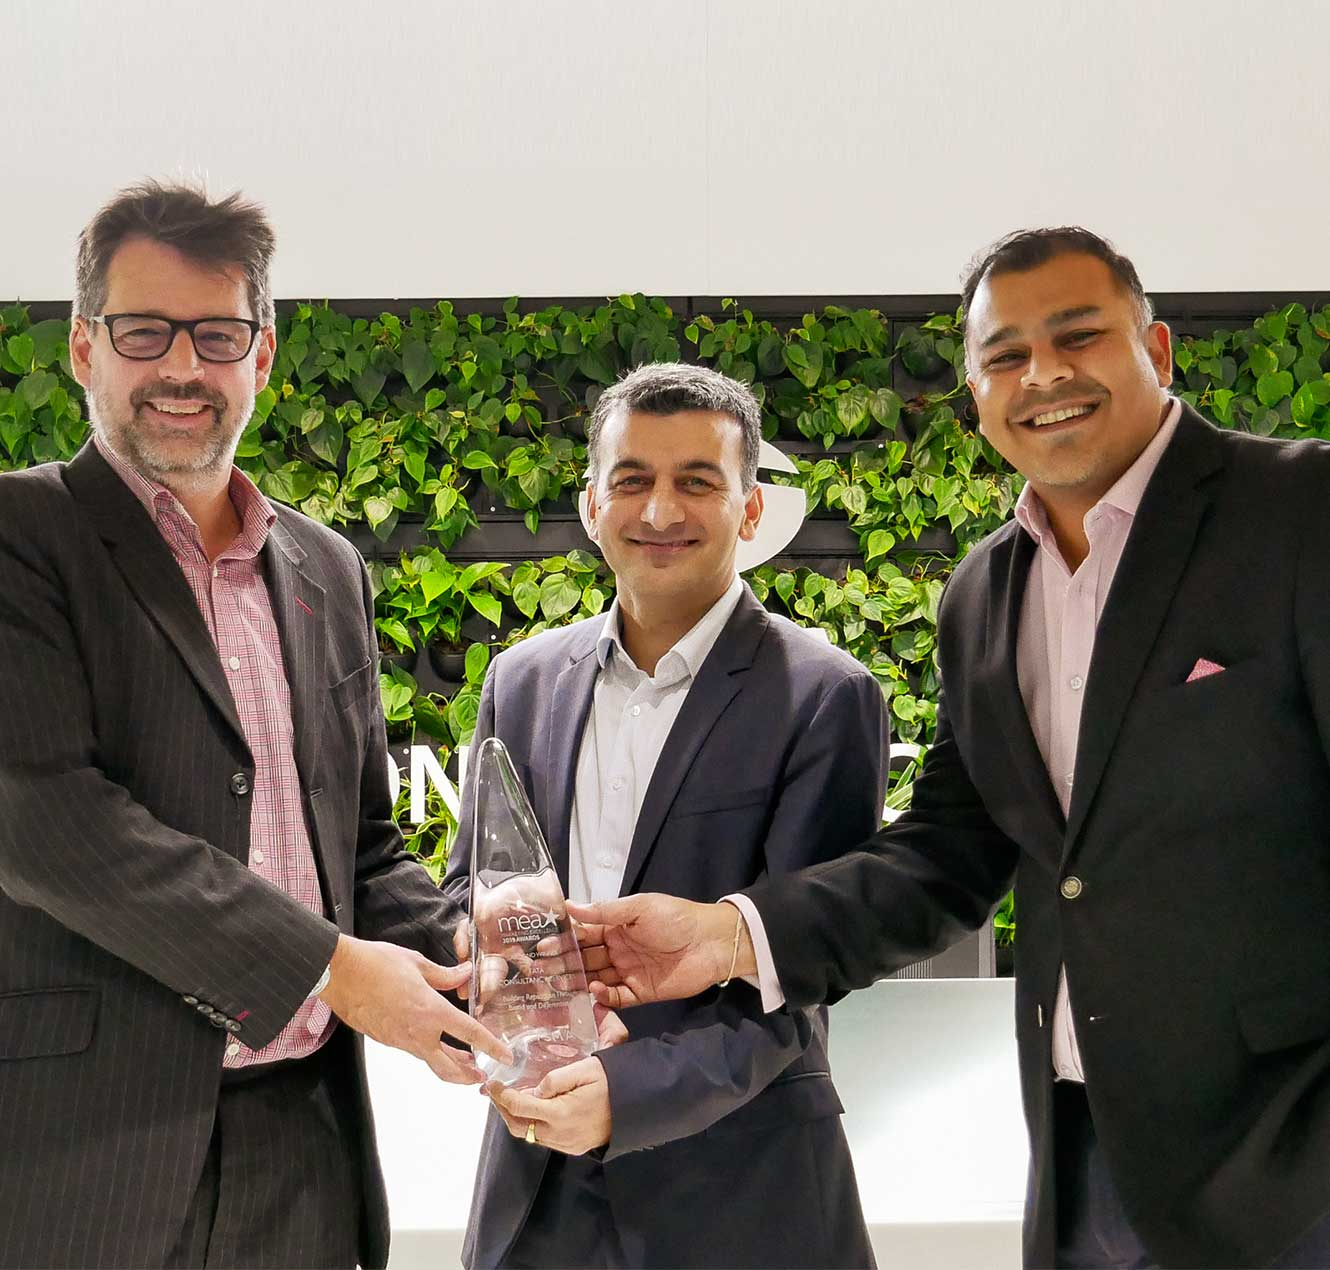 TCS Wins the ITSMA 2019 Diamond Award for Marketing Excellence